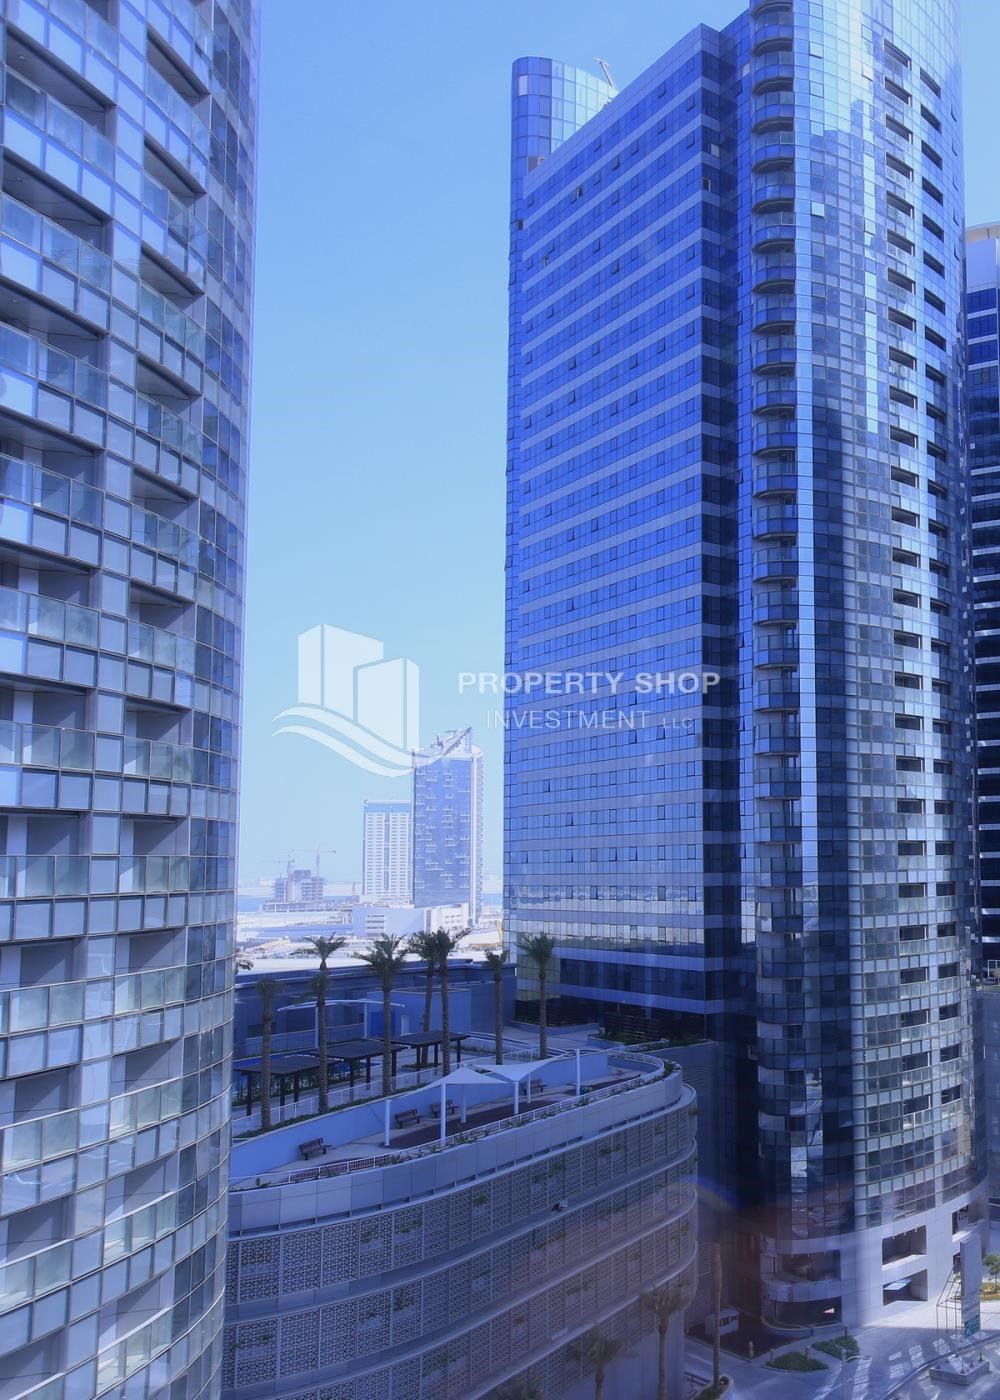 Property - Sea View Apt on High Floor with high investment returns.